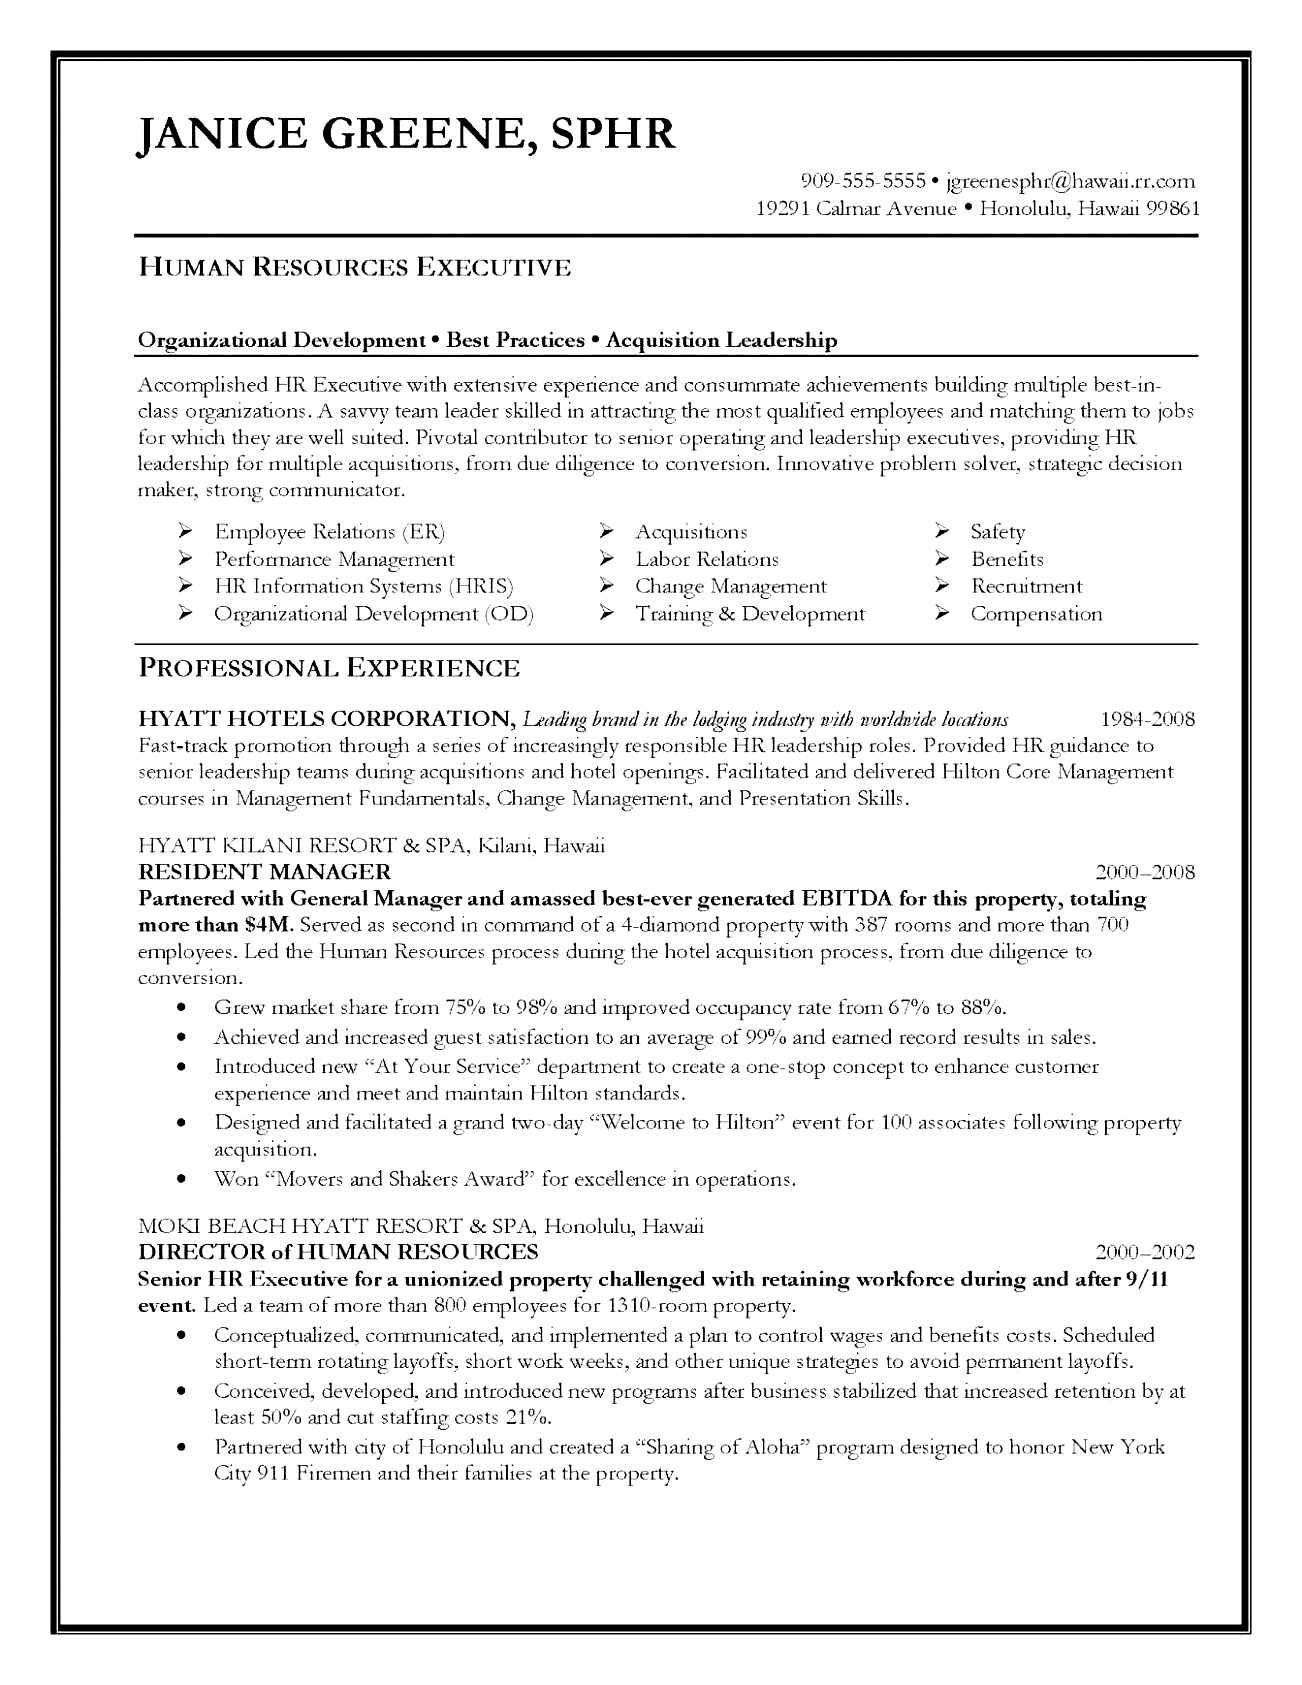 business management resume examples new leadership statements from mission statement in Resume Leadership Resume Statements